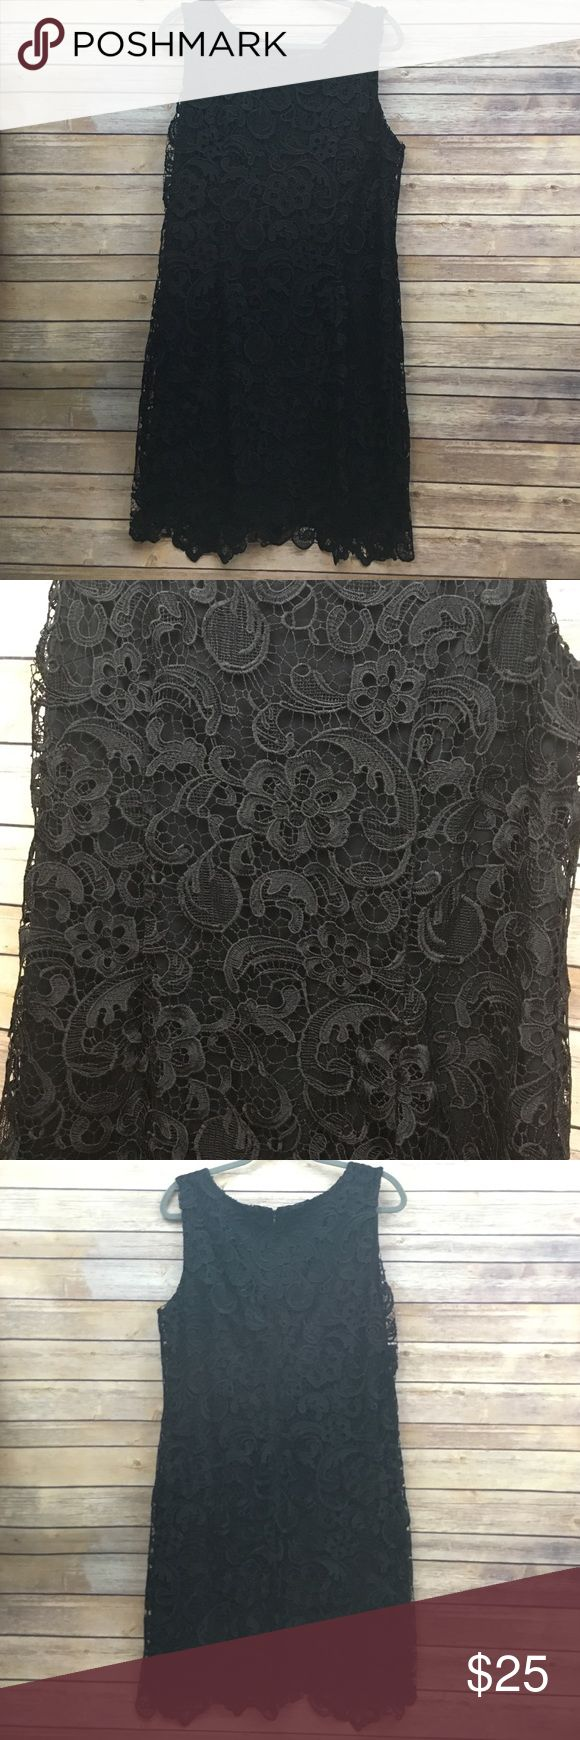 Black Lace Dress This is a beautiful black lace dress from Worthington that was worn once to my college graduation. It is super flattering and was worn under my graduation gown for most of the day, so it is in good condition. No trades. Worthington Dresses